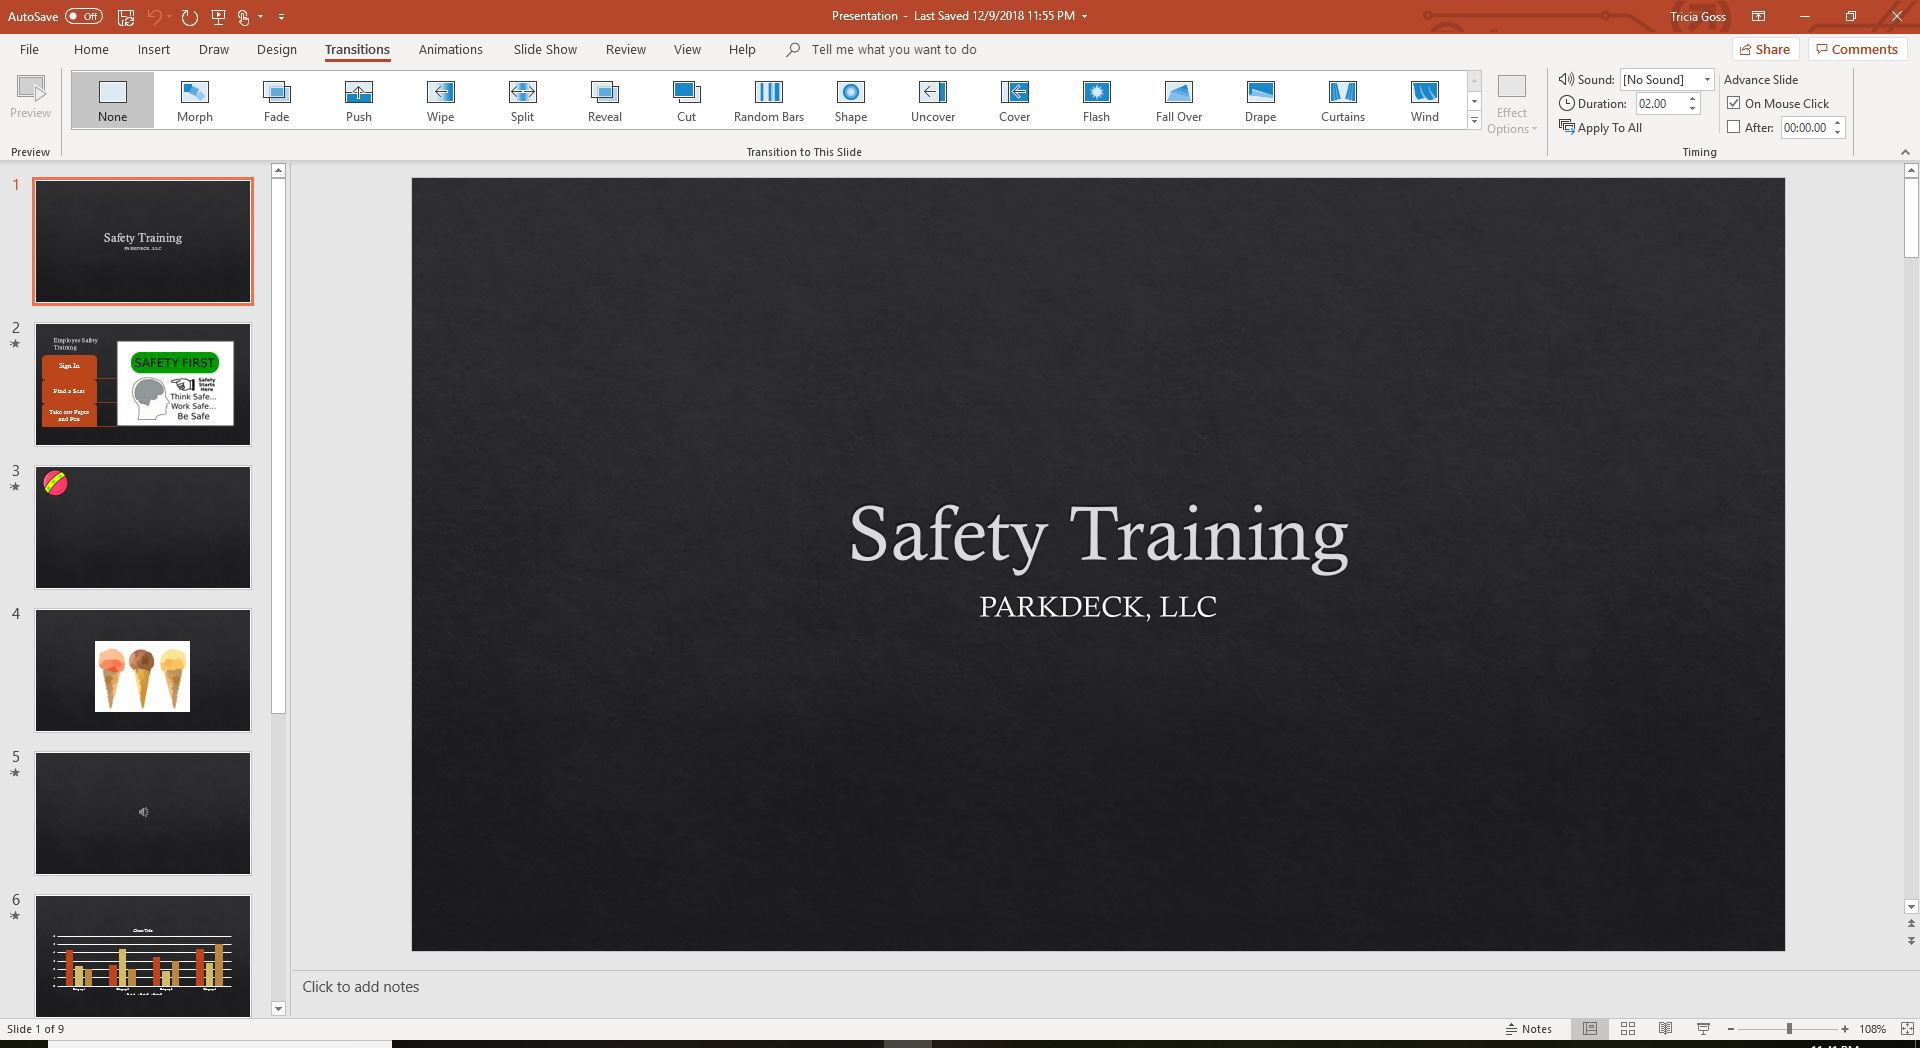 PowerPoint Transitions tab